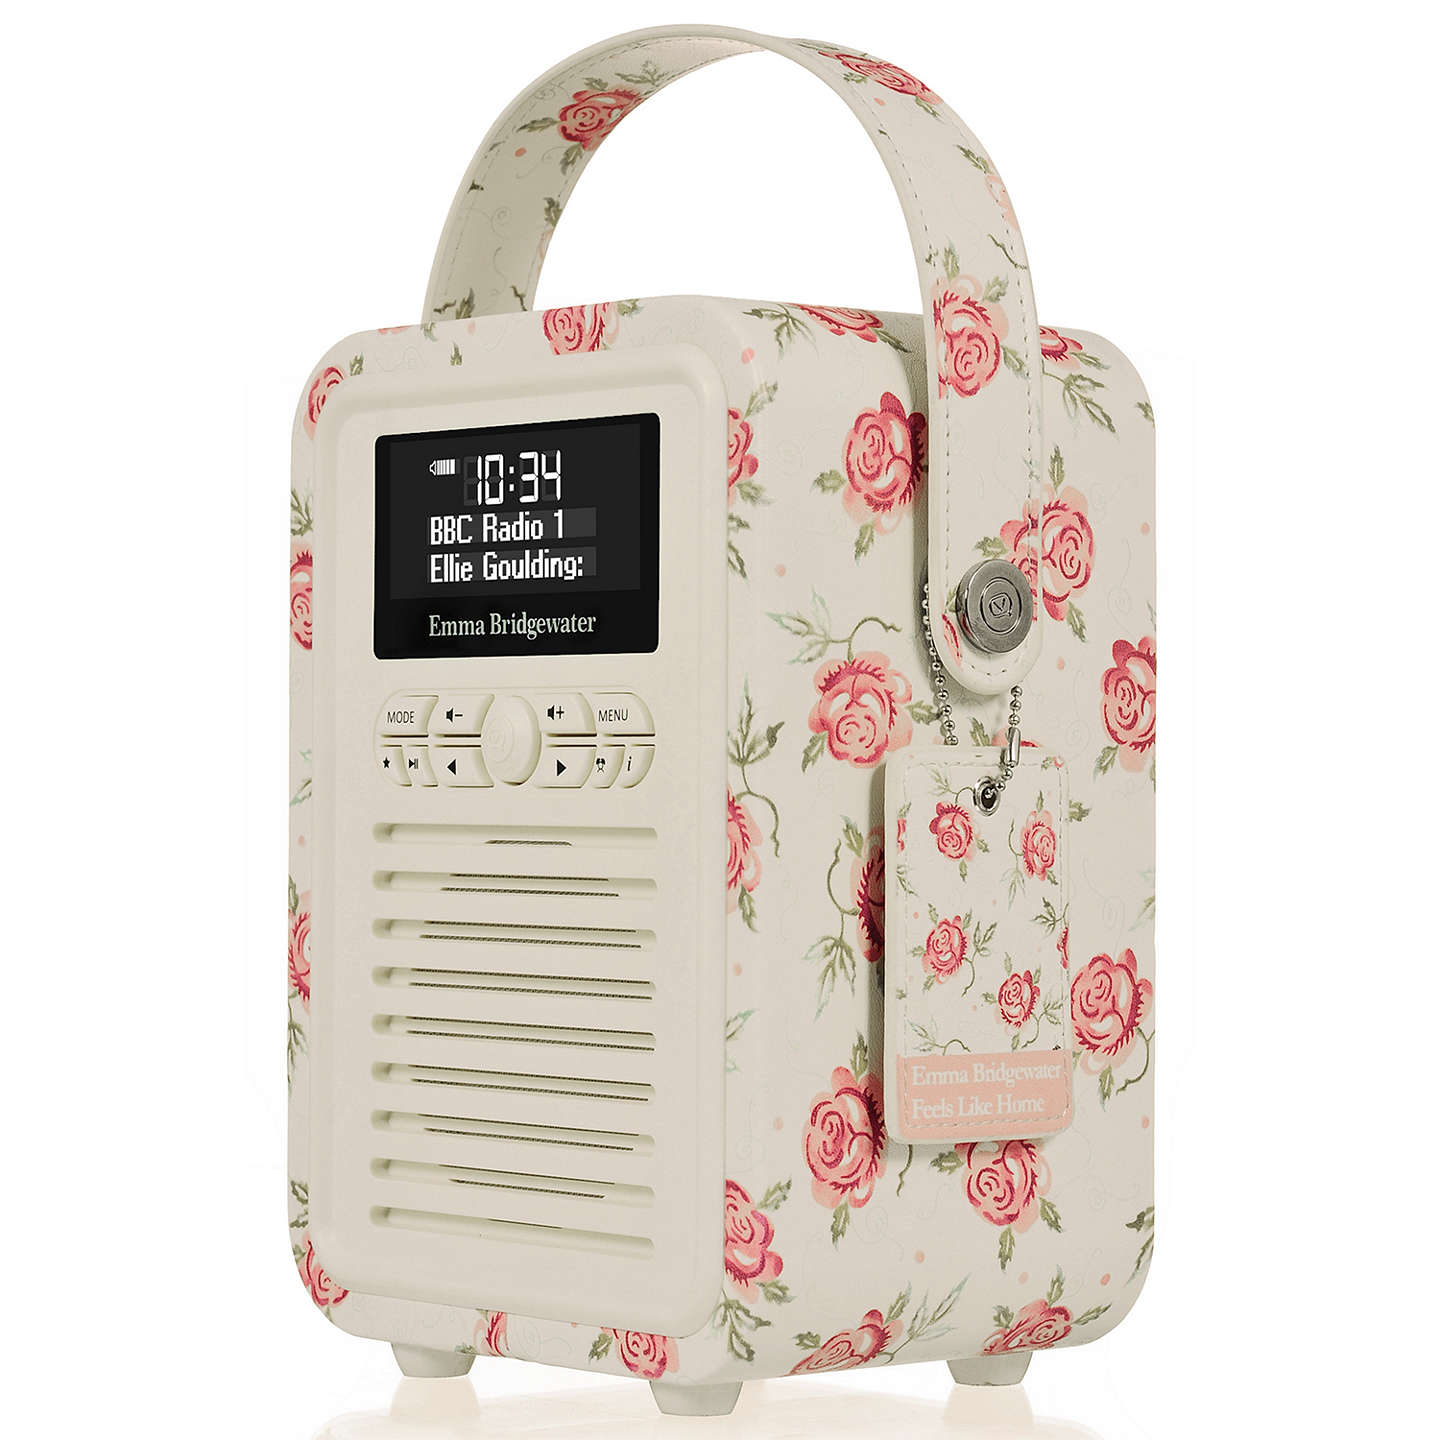 BuyVQ Retro Mini DAB/FM Bluetooth Digital Radio, Emma Bridgewater Patterns, Rose & Bee Online at johnlewis.com